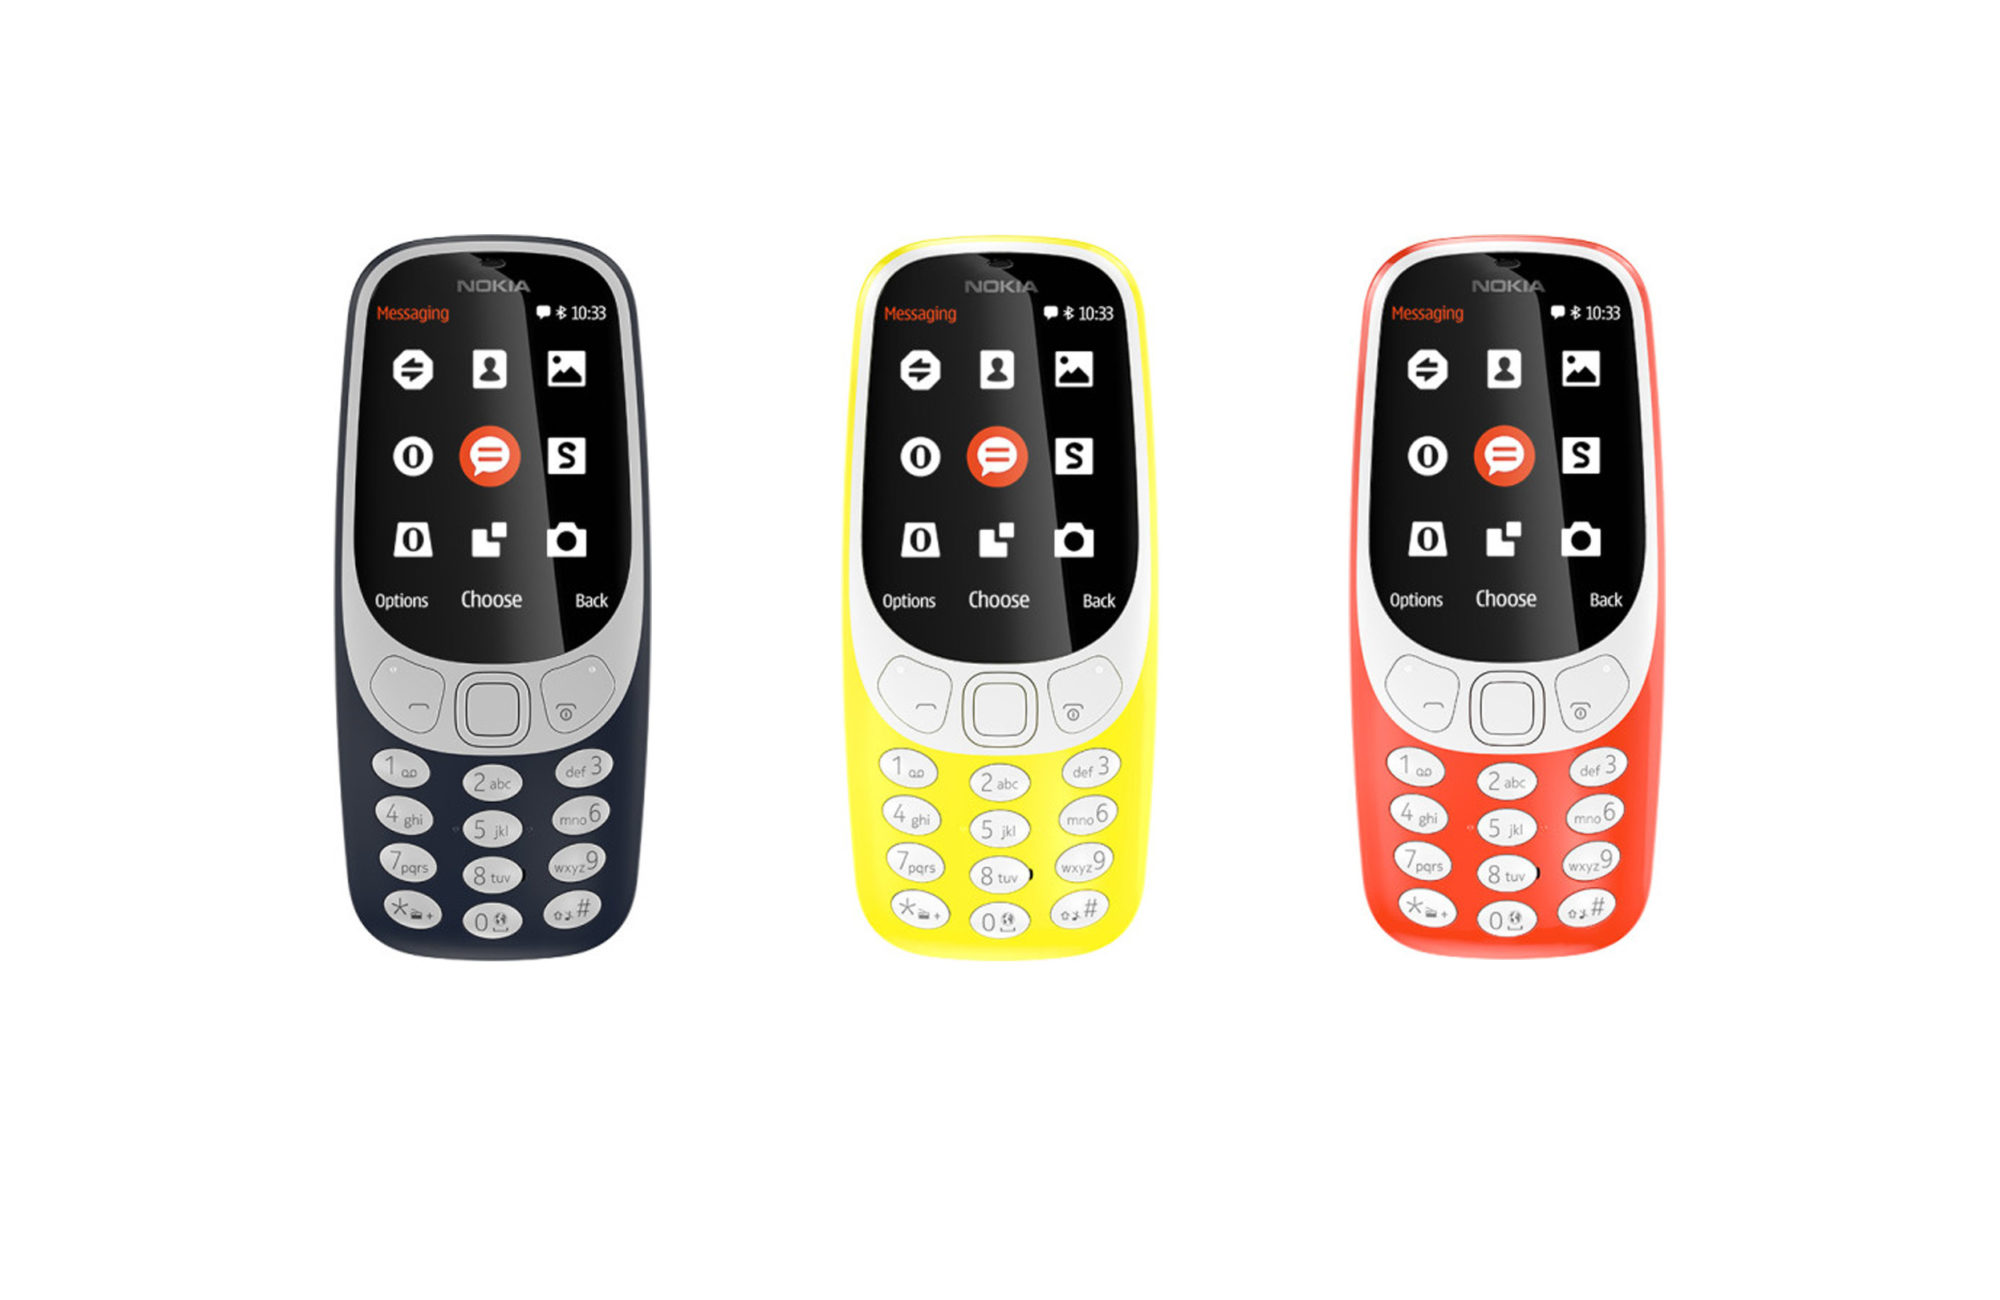 NEW NOKIA 3310 MOBILE PHONE WITH UPGRADED SPECS AND SNAKE GAME